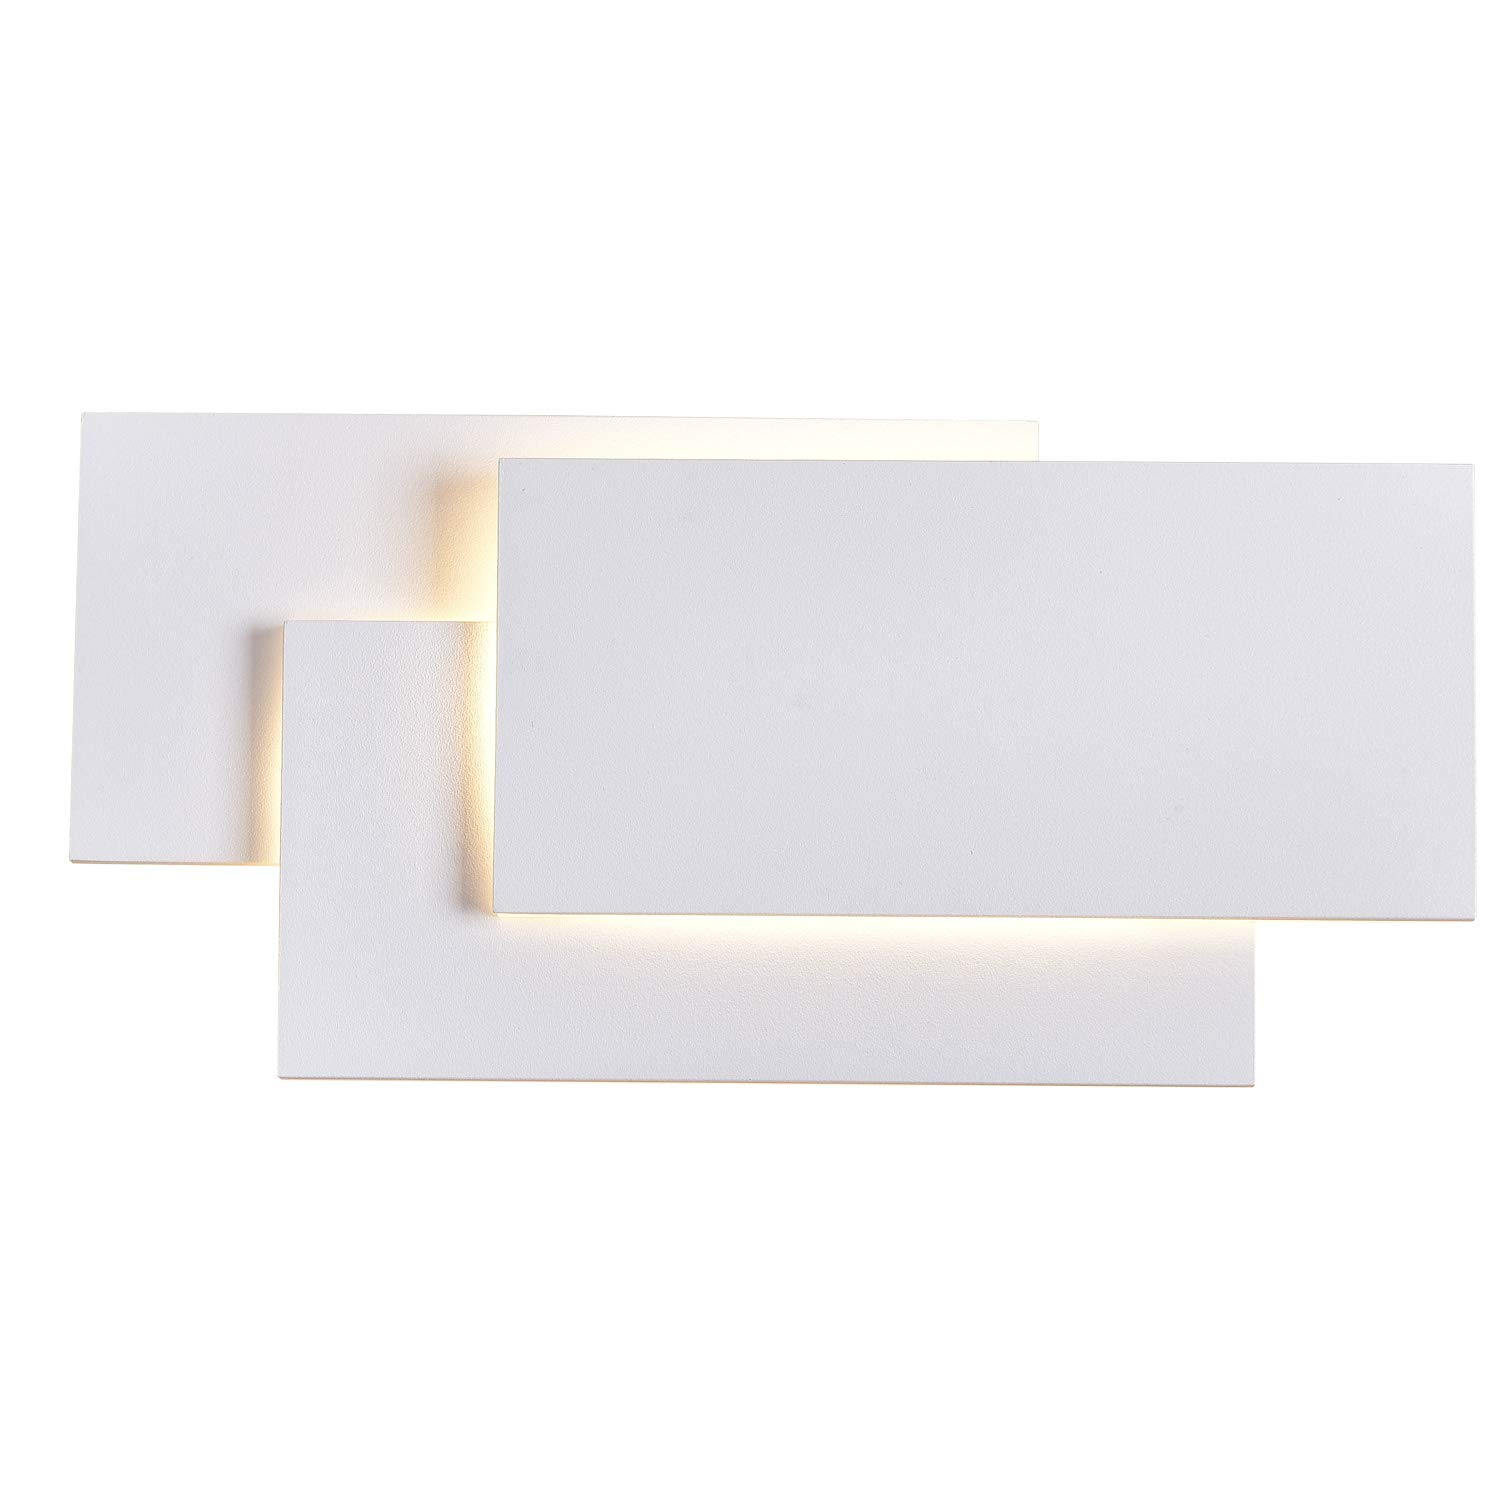 SOLFART LED up Down Wall Lights Indoor Wall Sconce Lamps Bedroom Living Room Decorate (White 3000k)